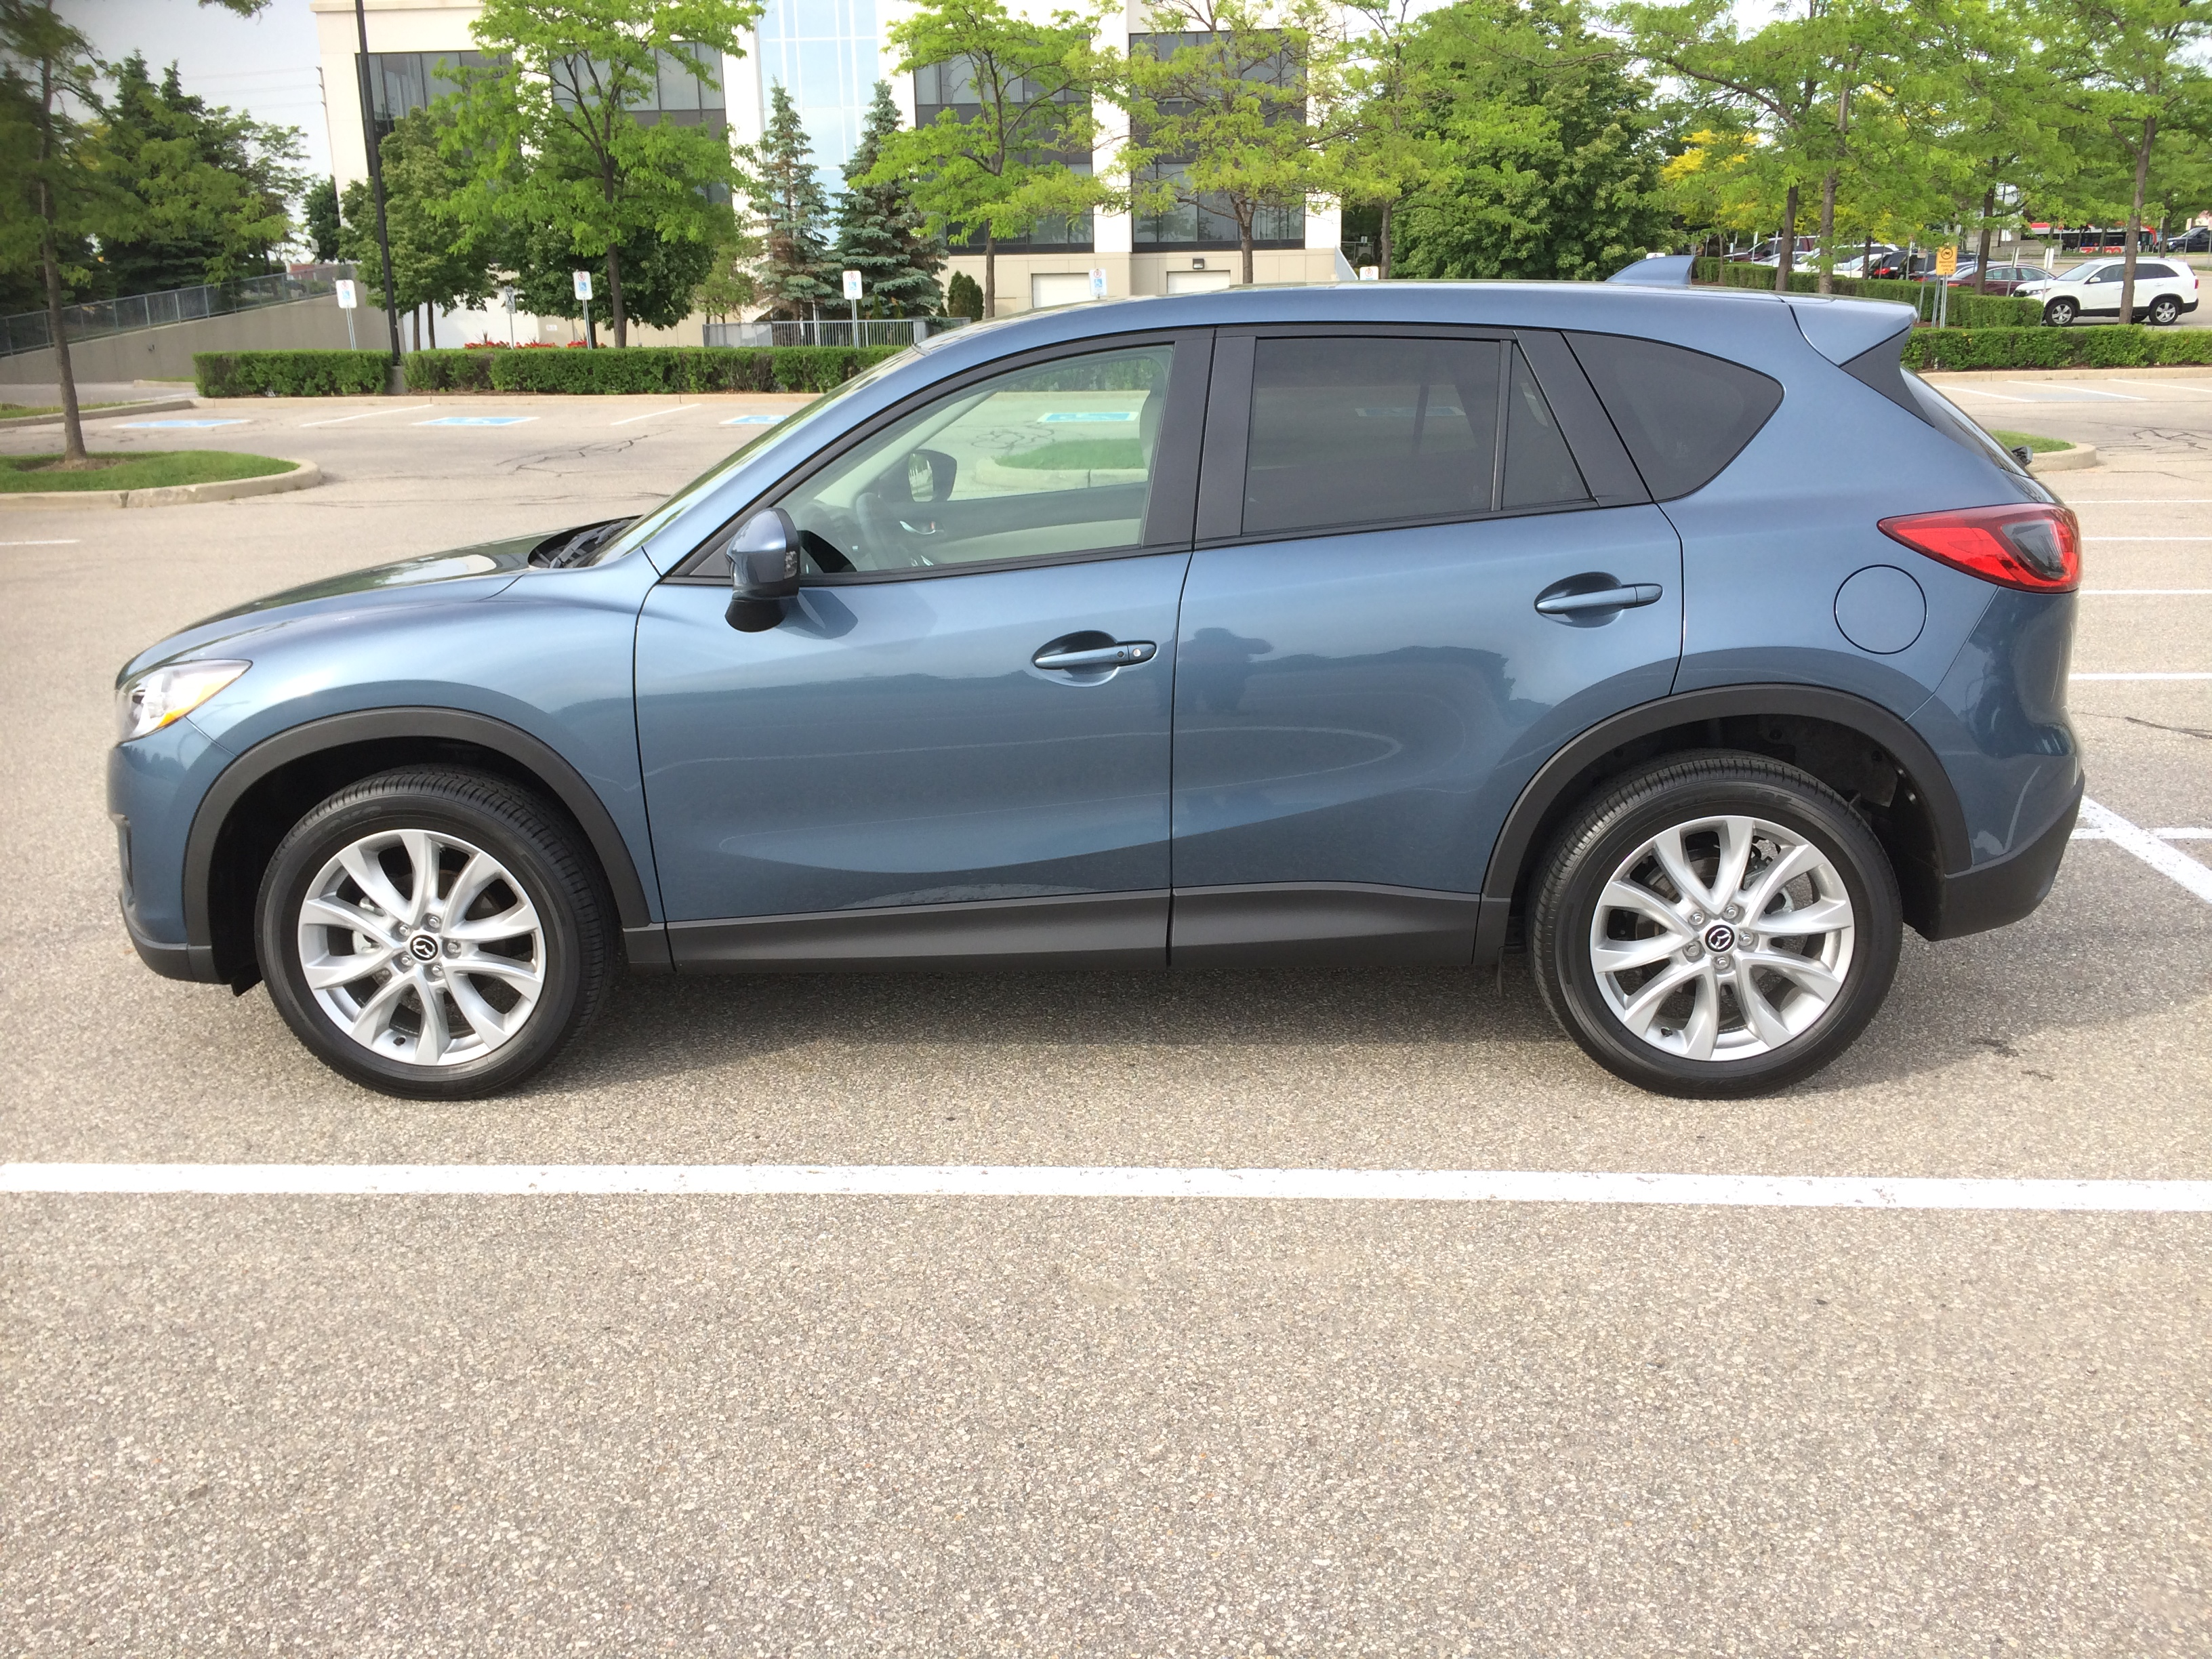 review reviews touring off cx mazda the about img cars truth grand racetrack beaten